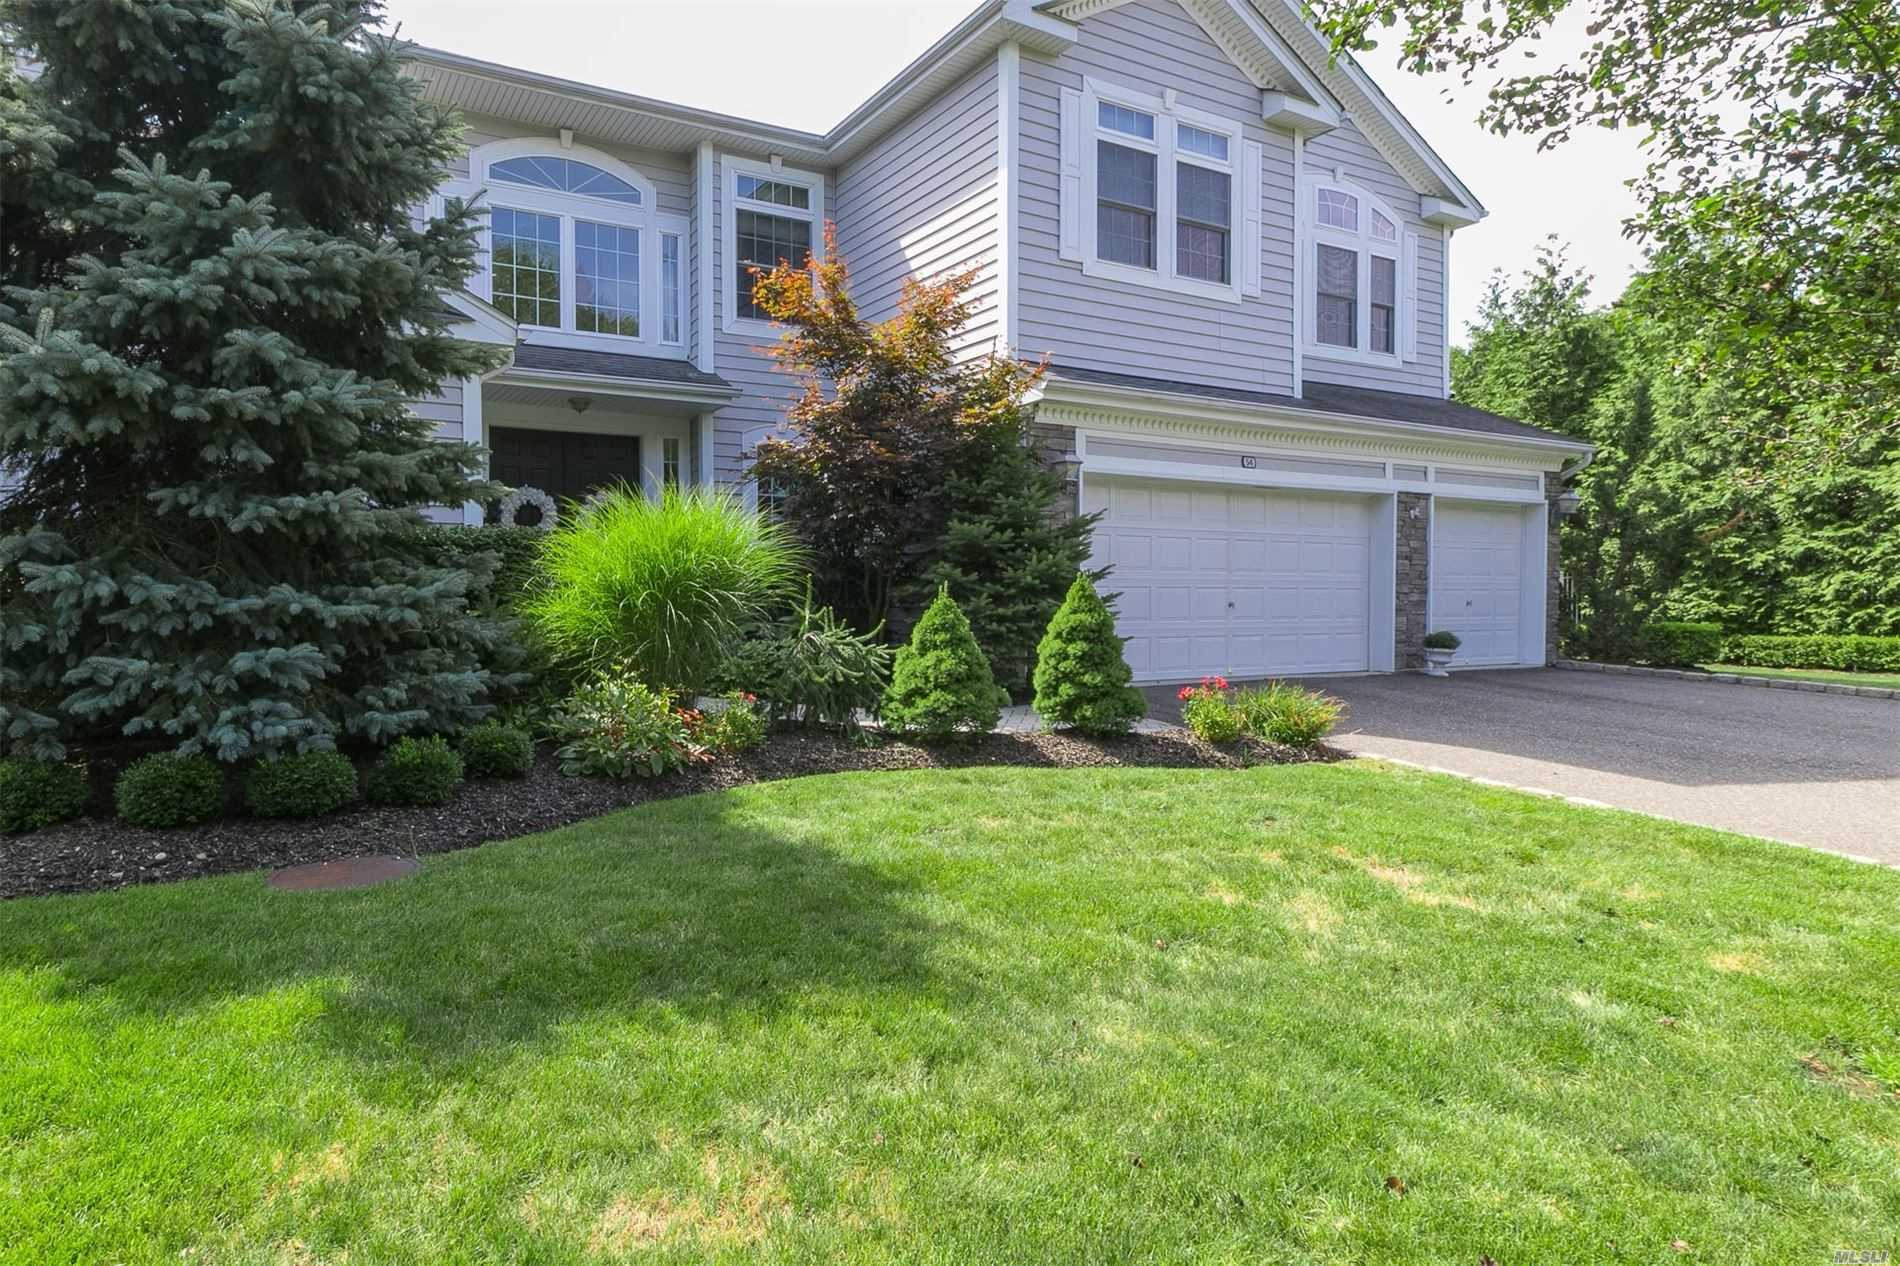 Photo of home for sale at 54 Monterrey Dr, St. James NY